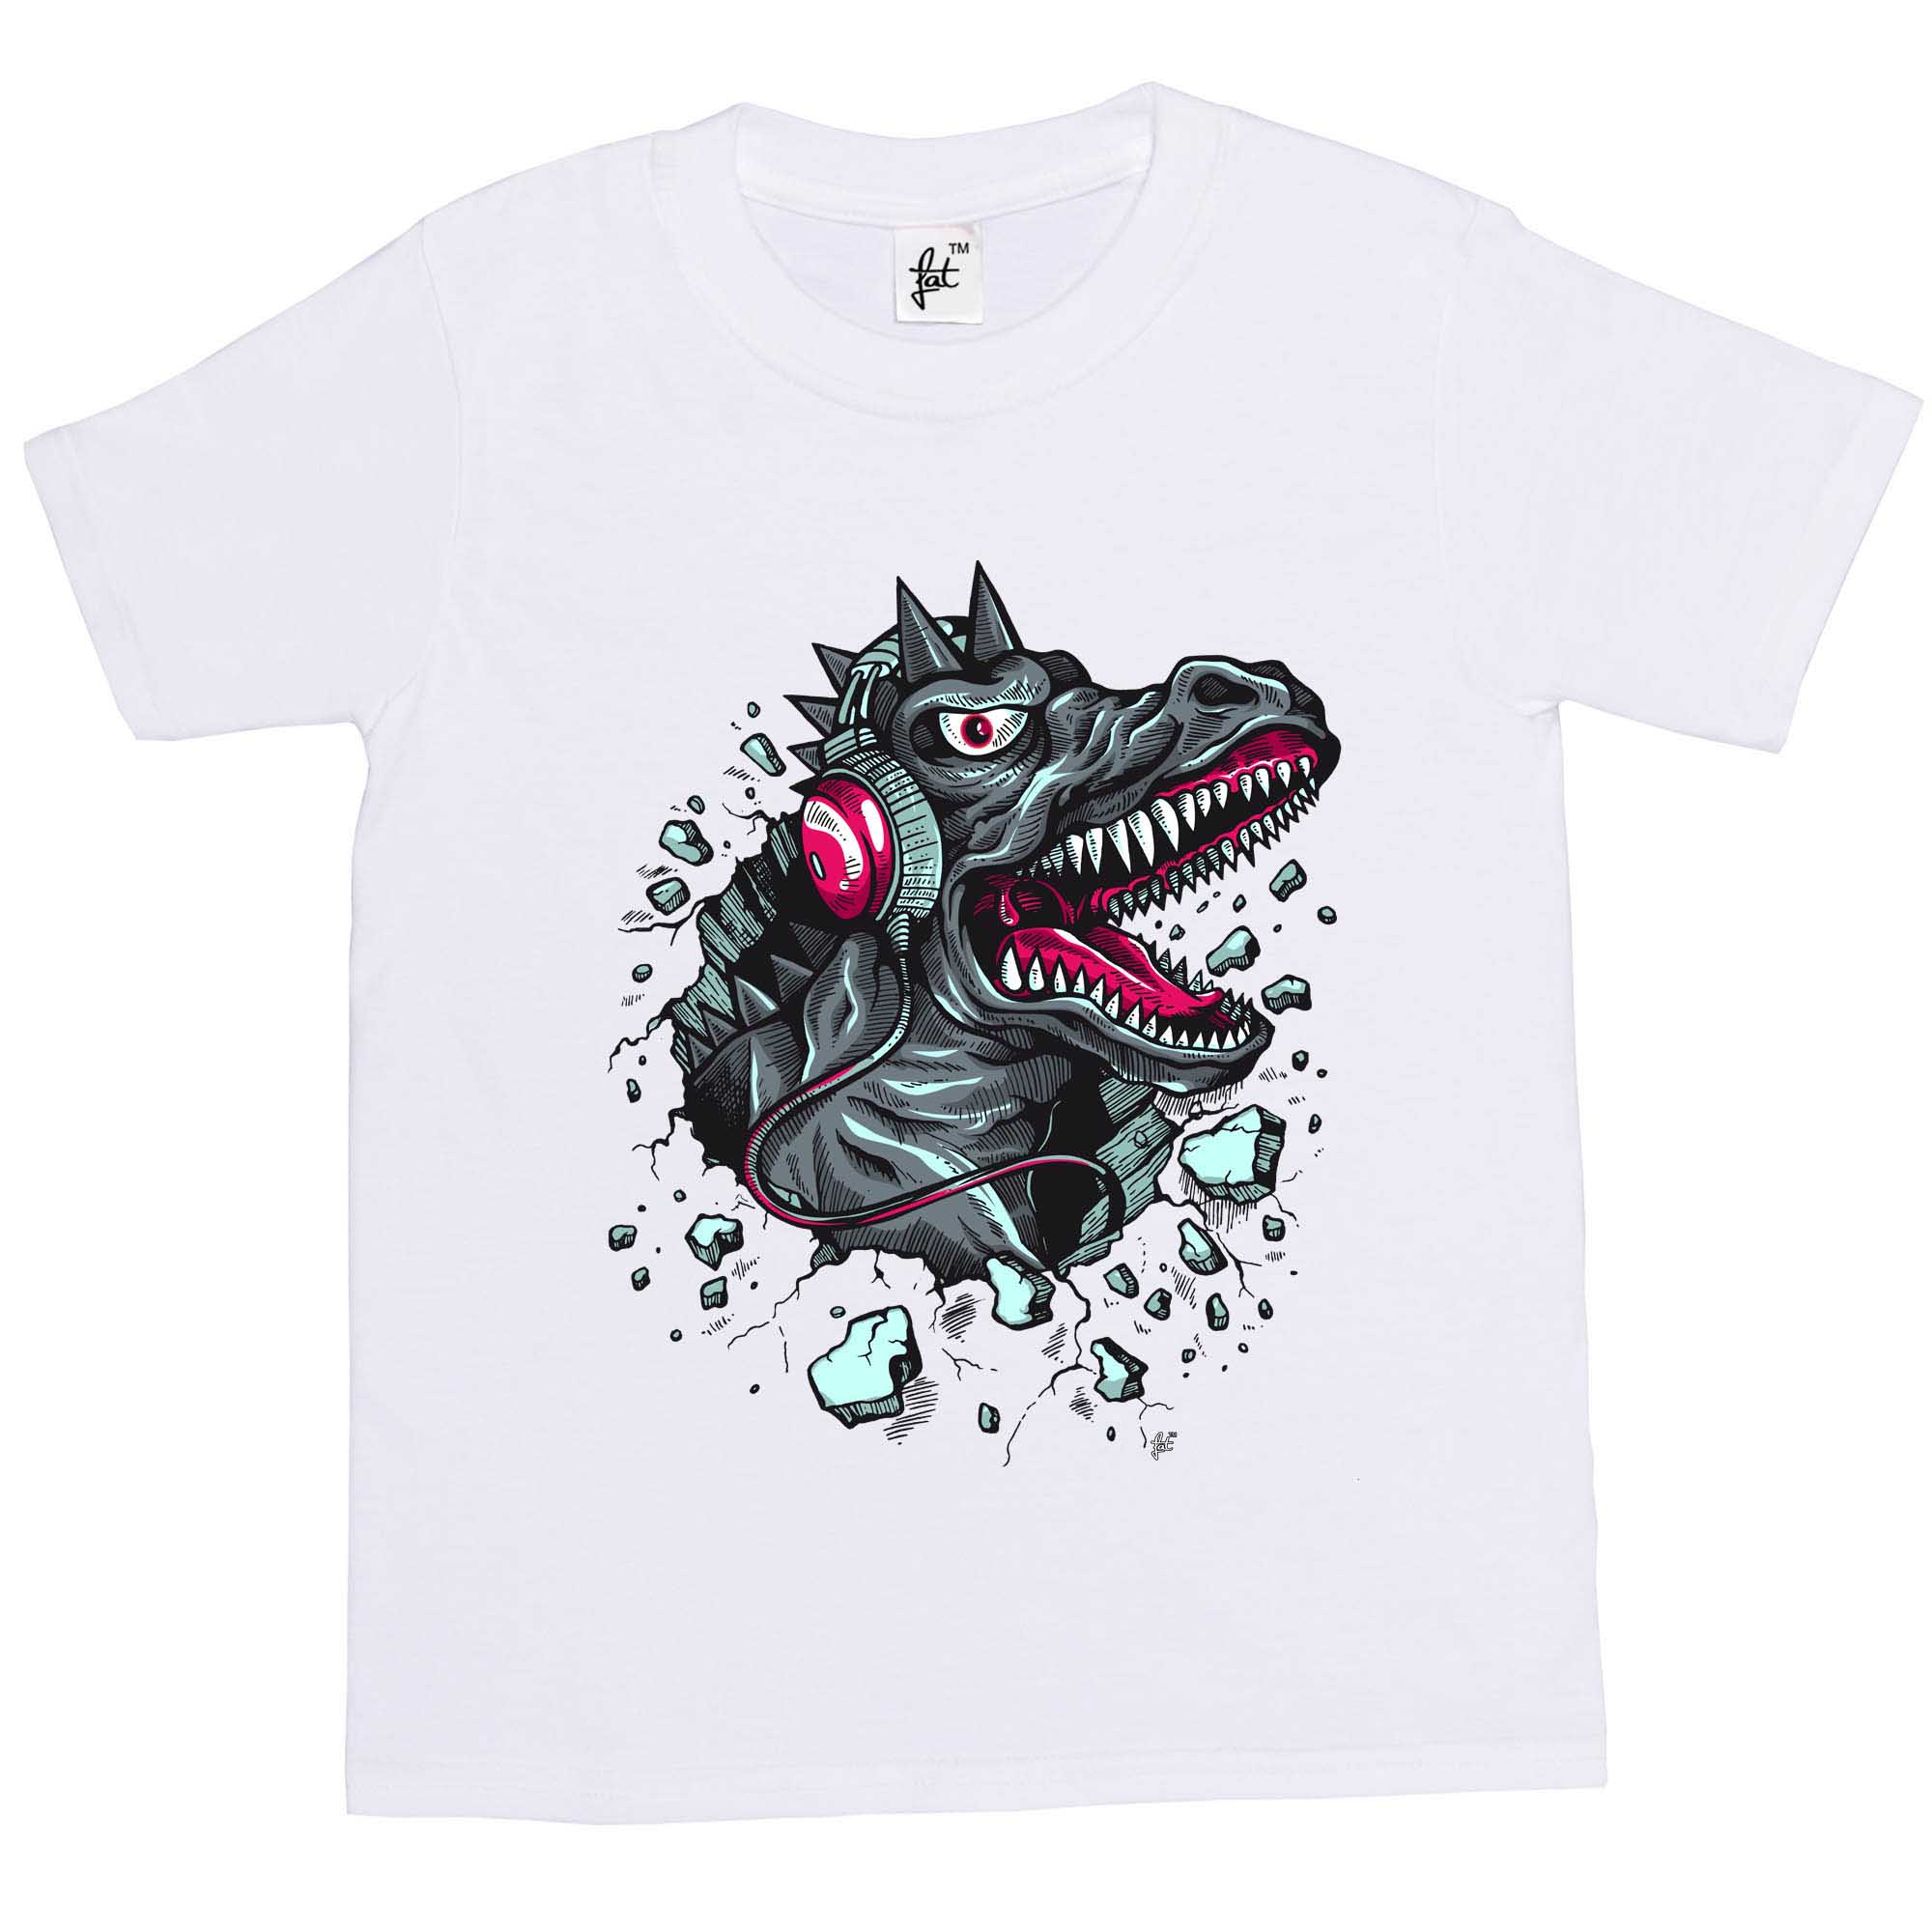 1Tee Kids Girls Dinosaur Breaking through Wearing Headphones T-Shirt